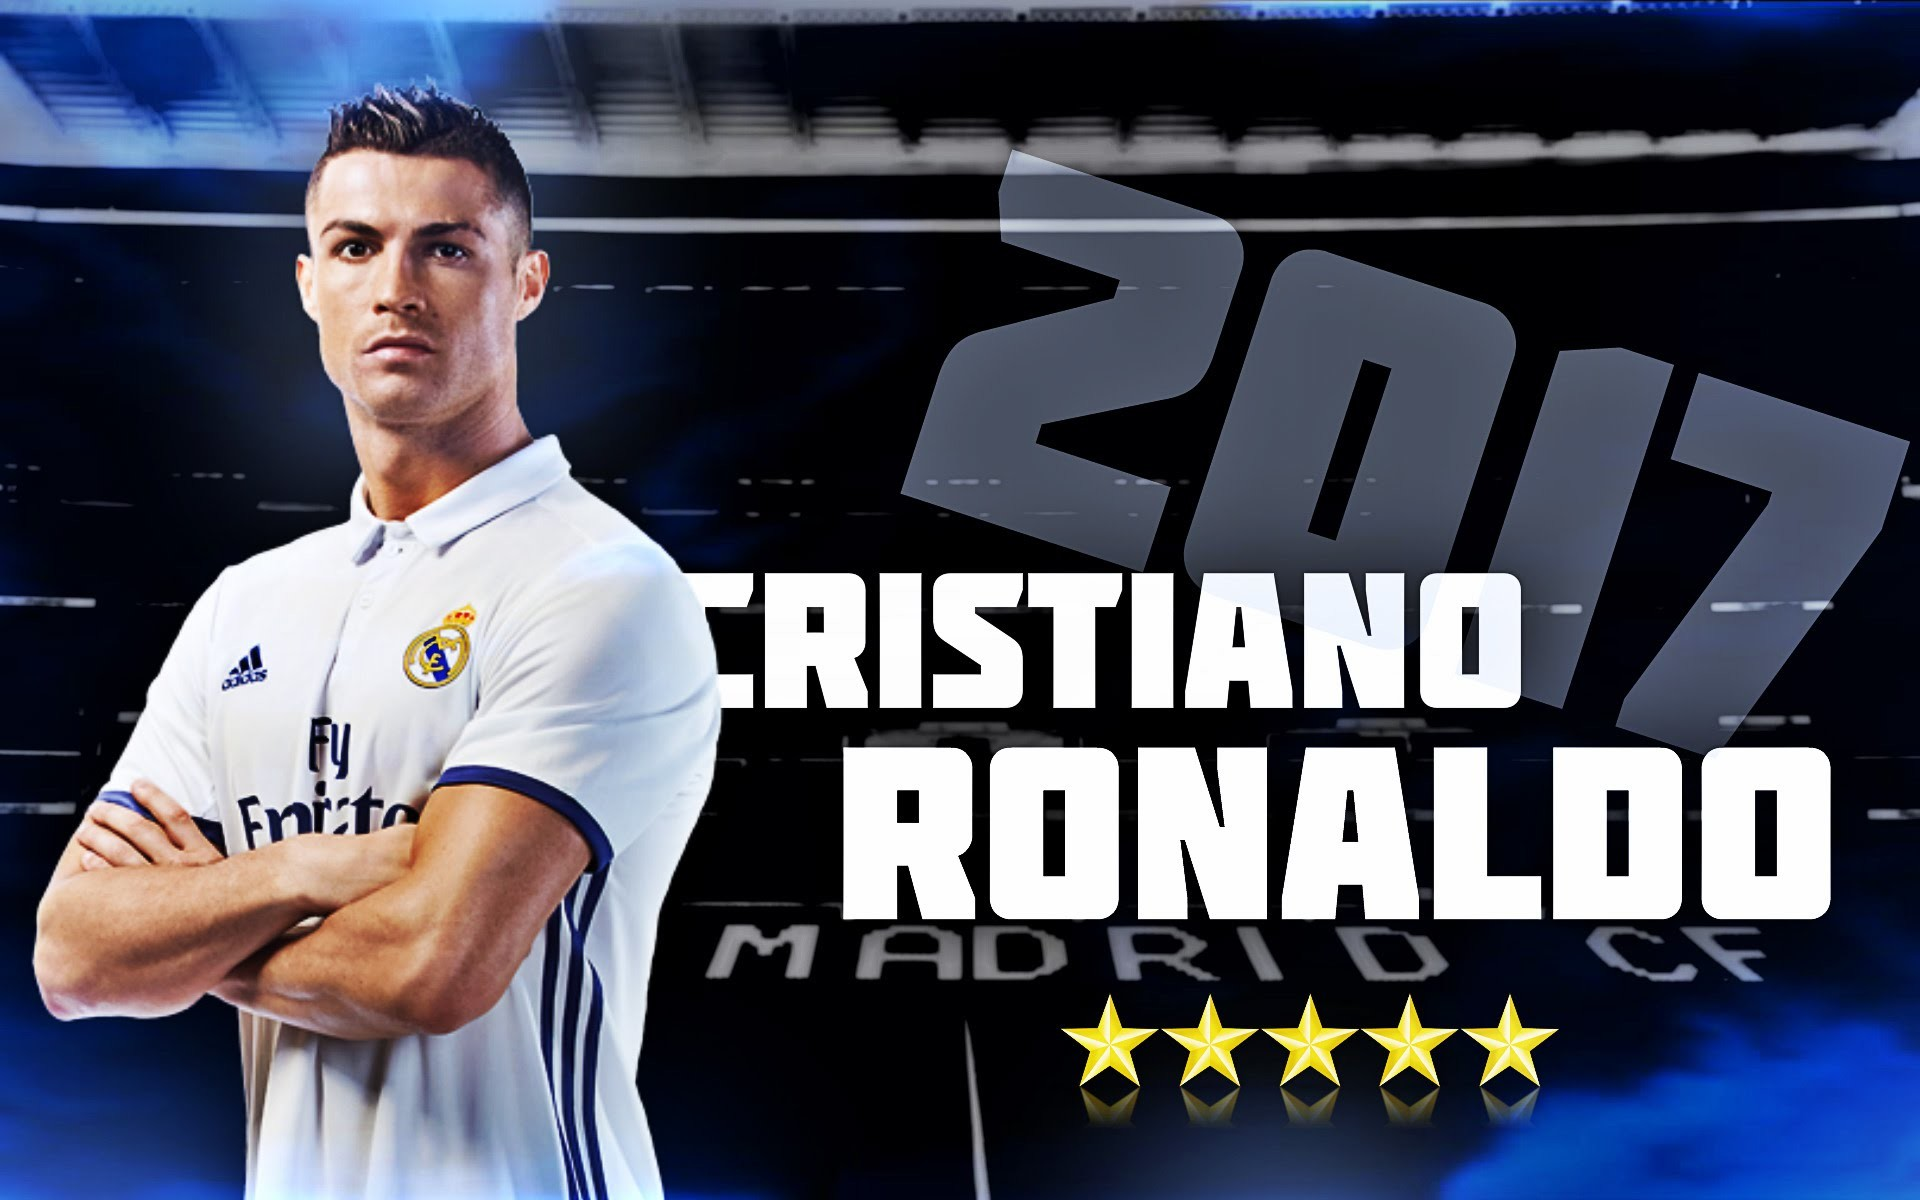 1920x1200 wonderful cristiano ronaldo wallpaper 2017 20 all inspiration article